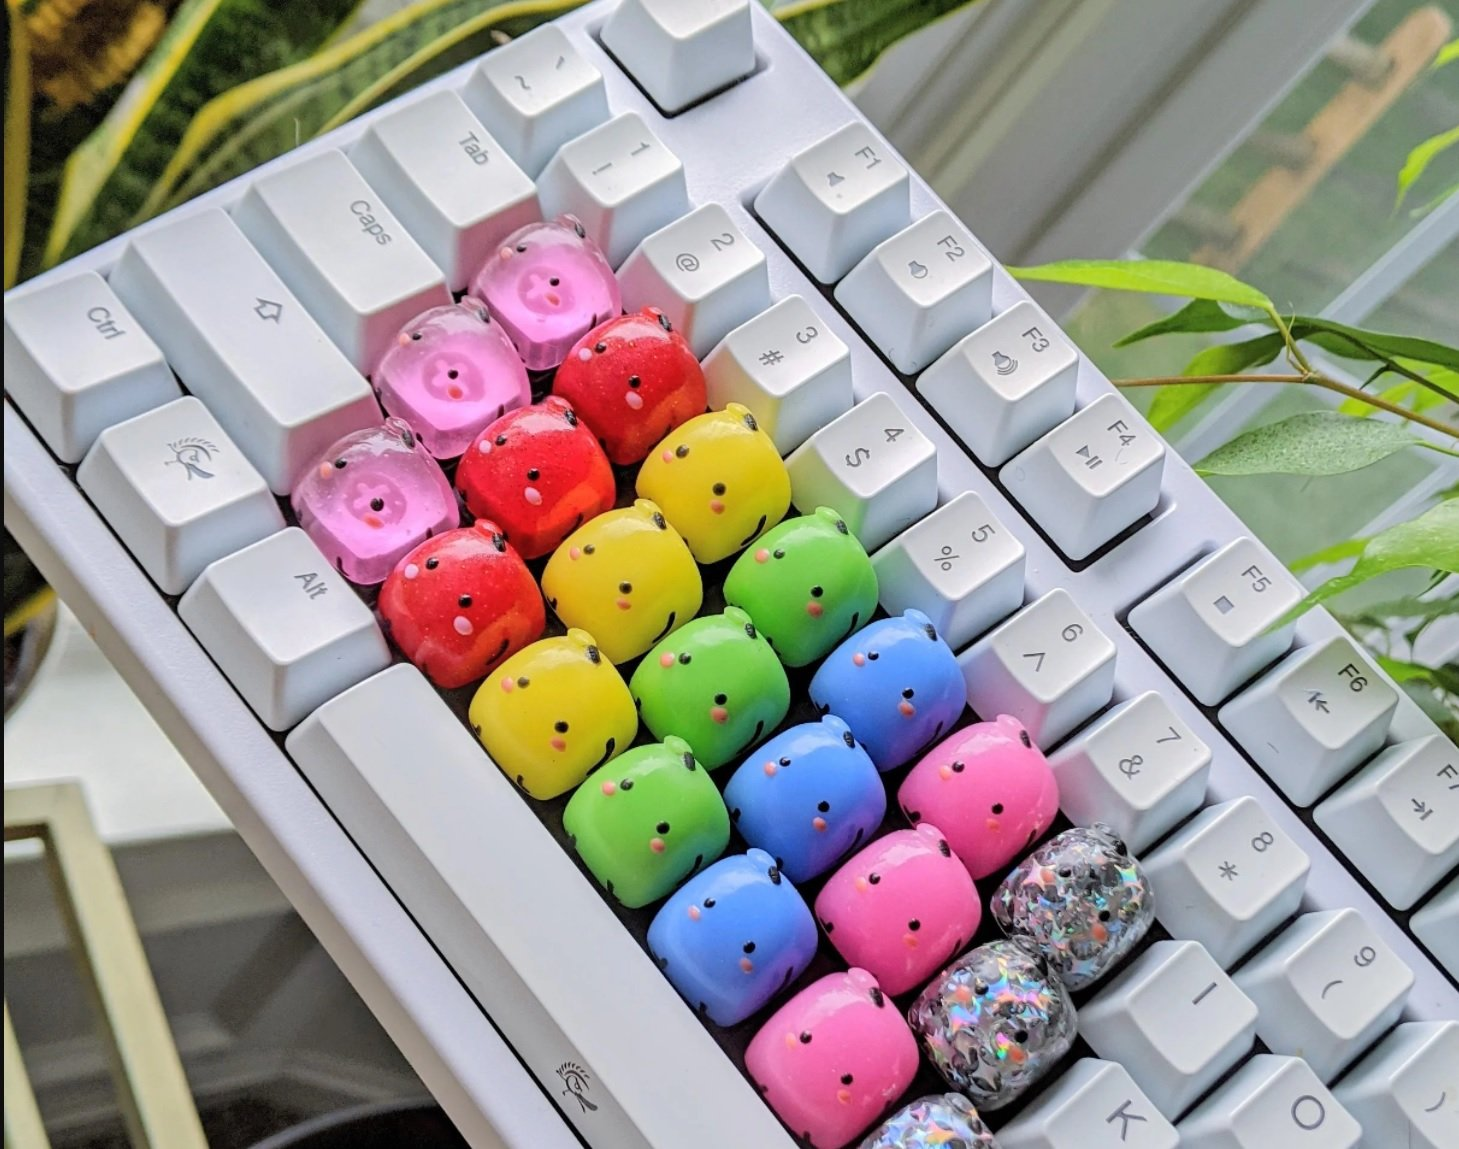 These Stardew Valley Junimo keyboard key caps are fire screenshot